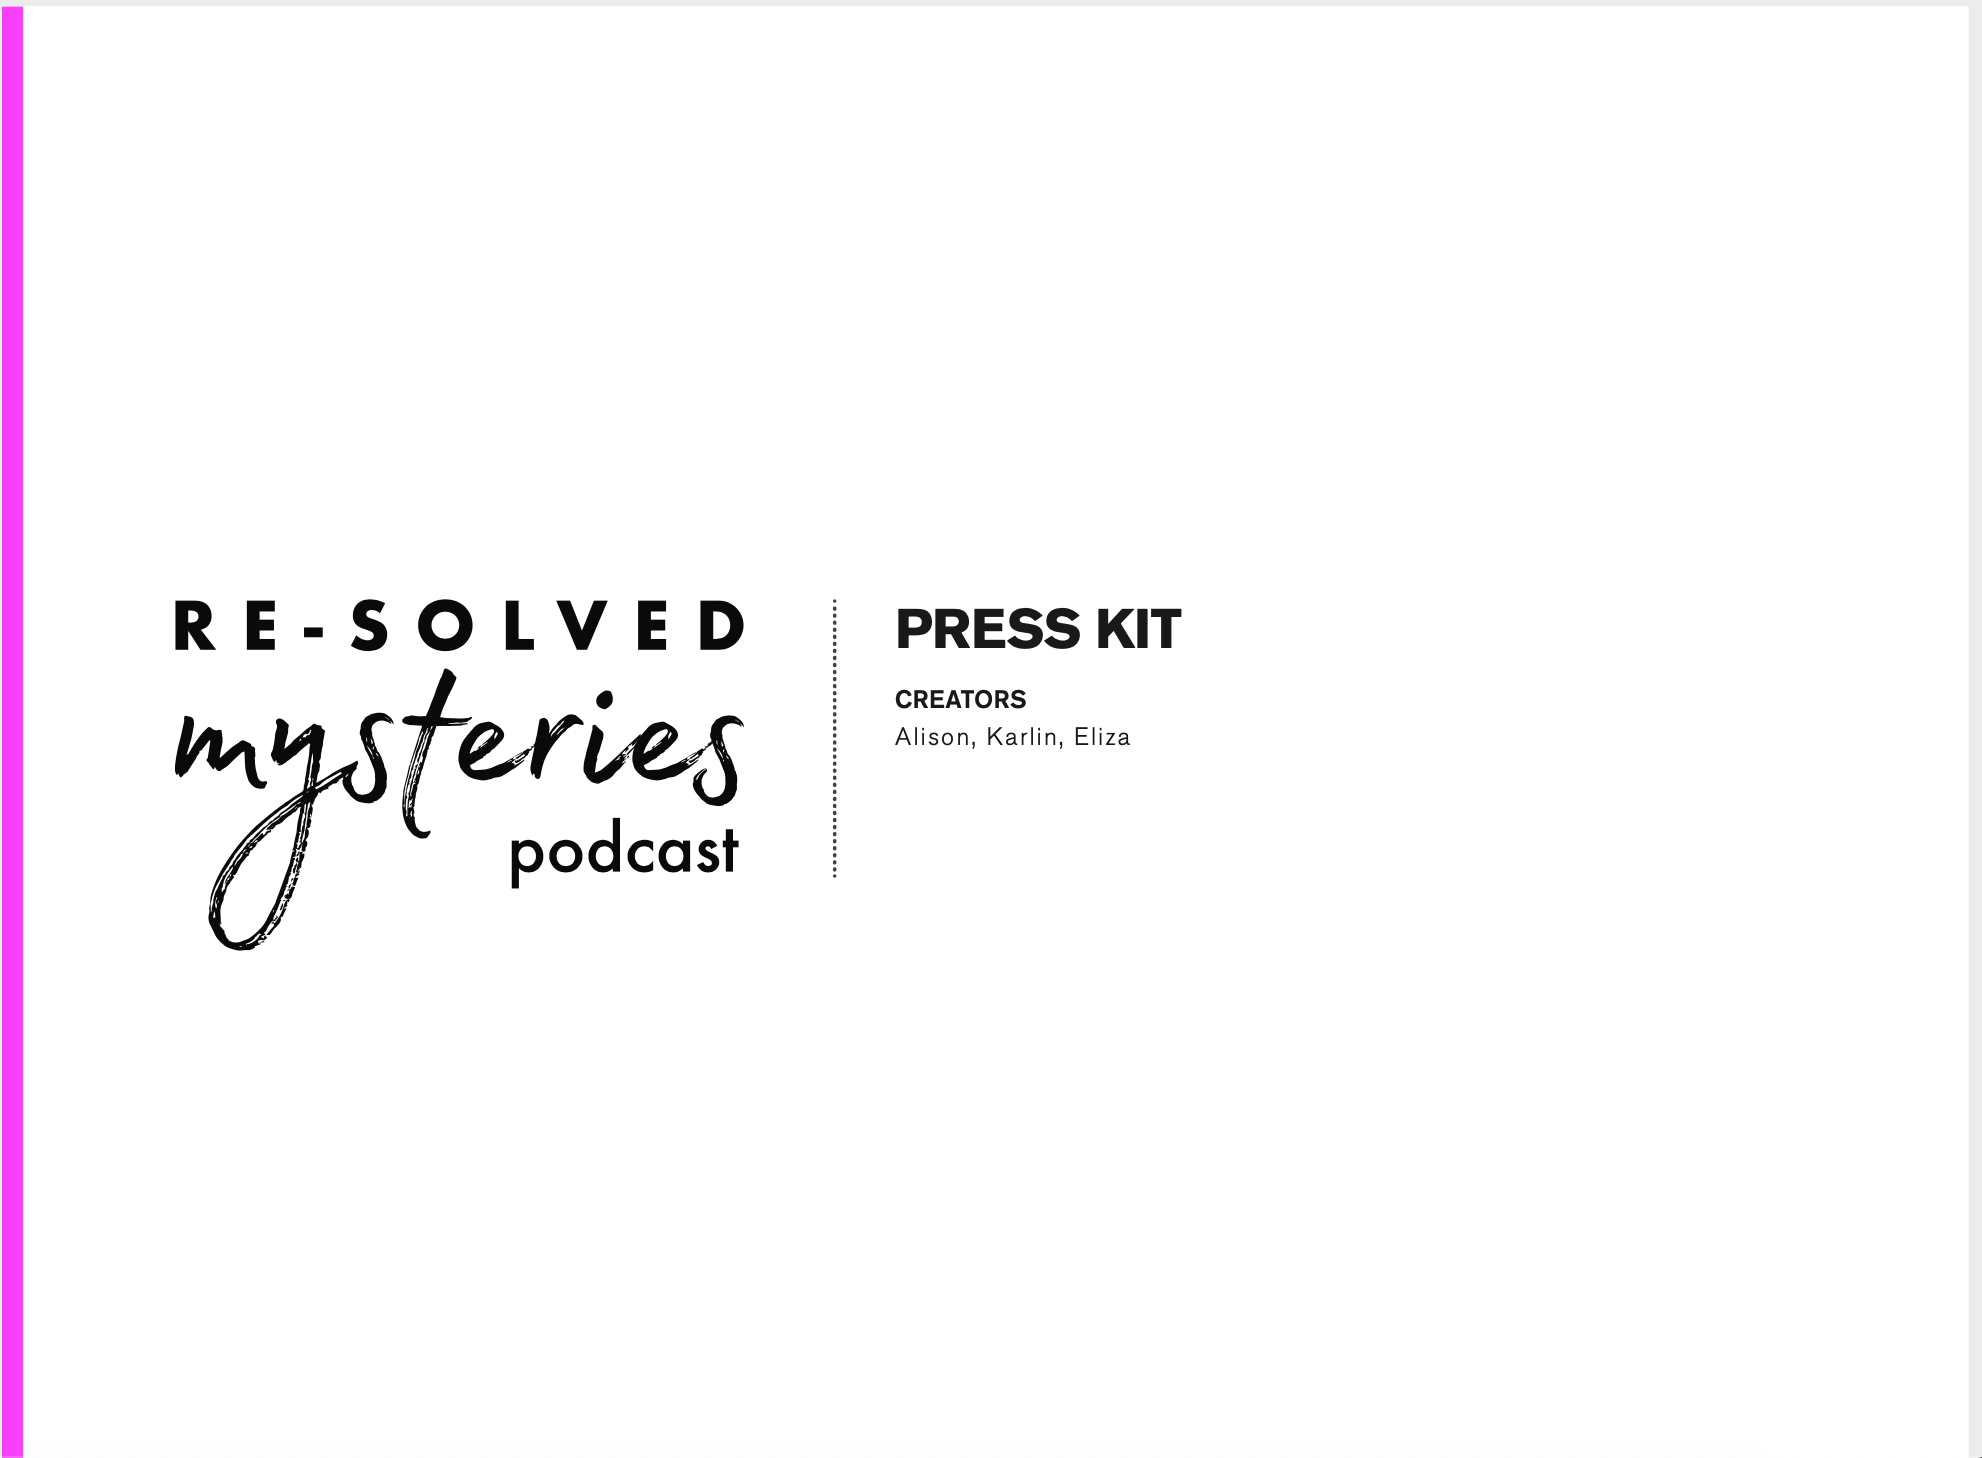 Re-Solved Mysteries Podcast Press Kit